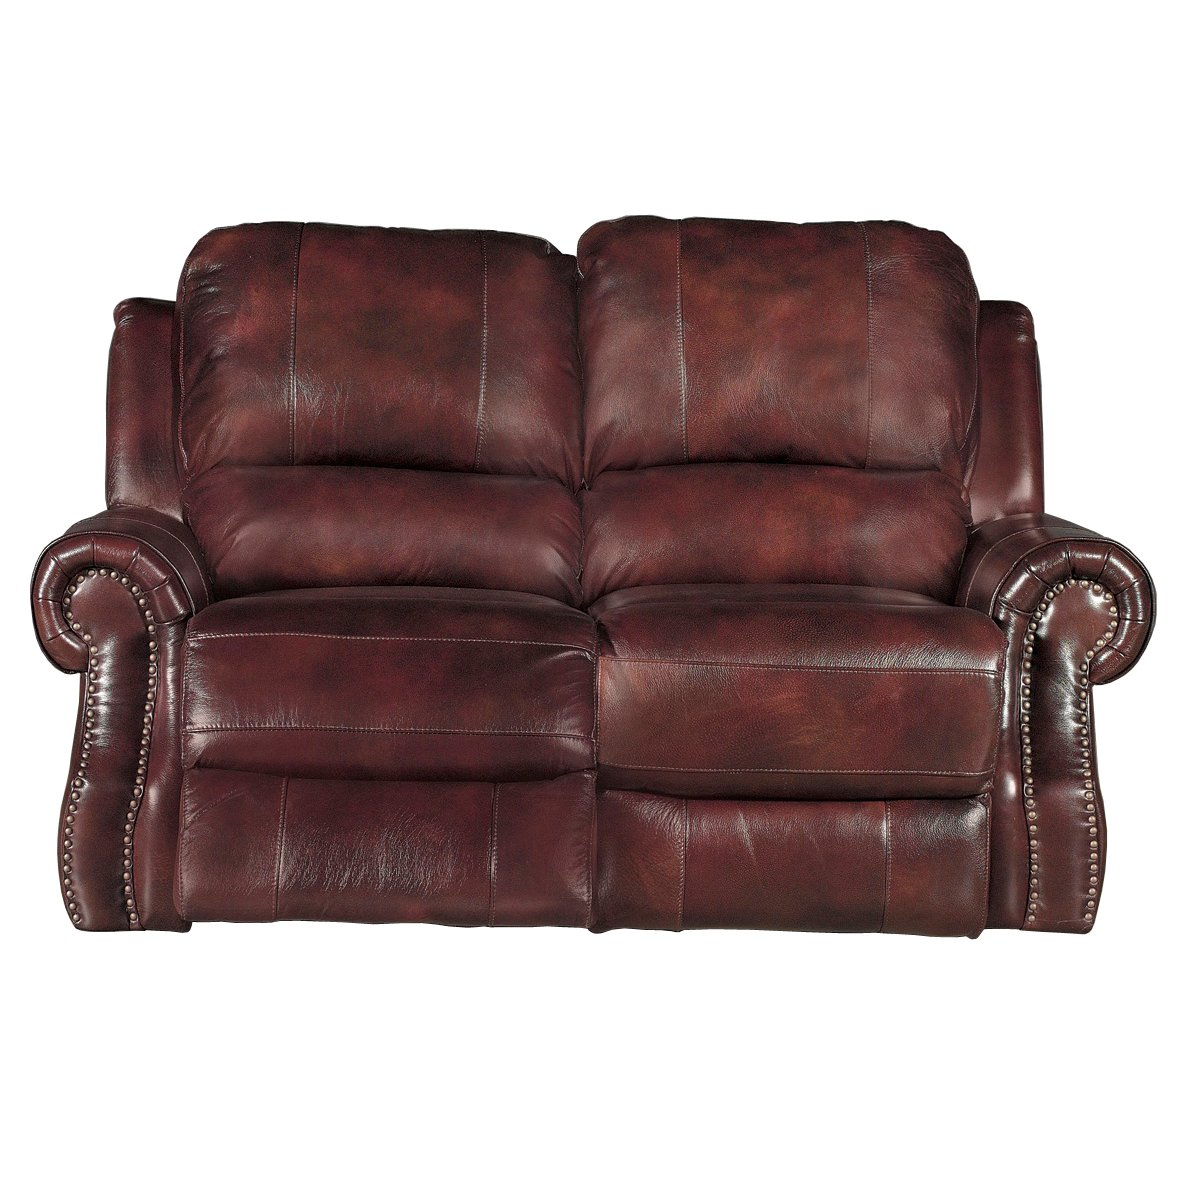 Madison 69 burgundy leather match power reclining loveseat Burgundy leather loveseat